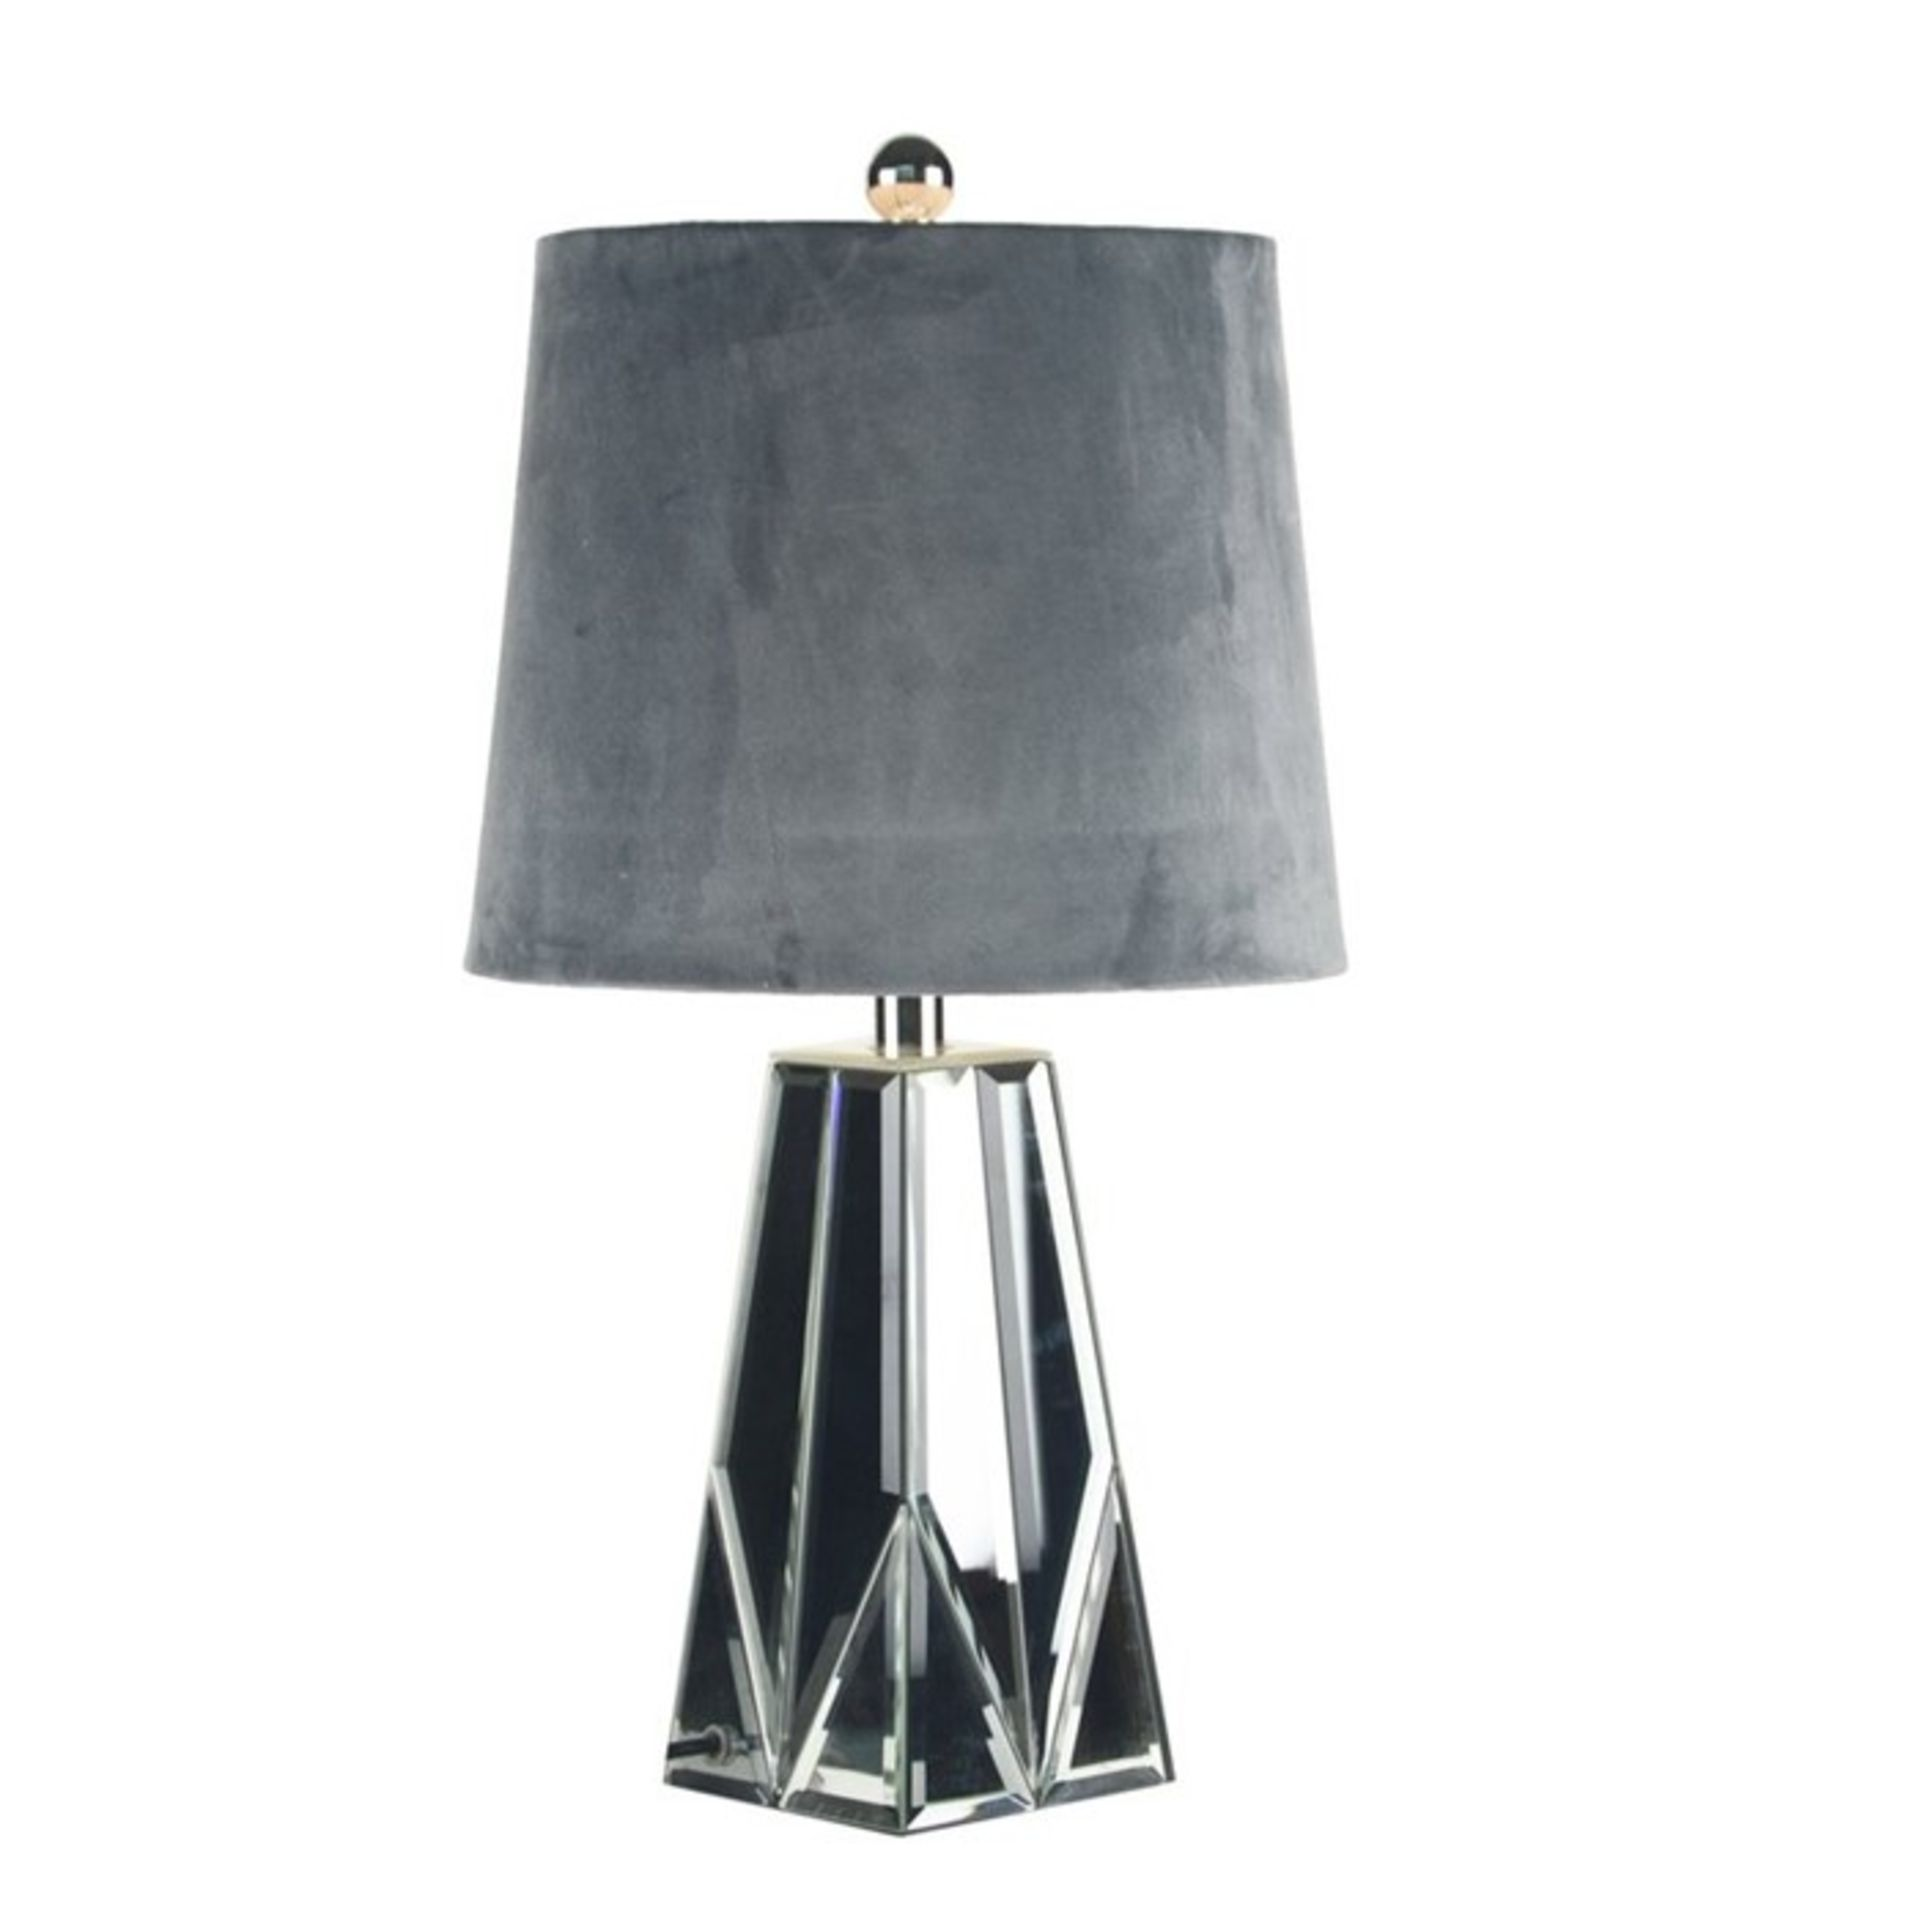 Canora Grey, Kaylynn 78cm Table Lamp (SLIGHT DENT IN SHADE) - RRP£162.99 (WLDK2248 - 22262/17) 1A